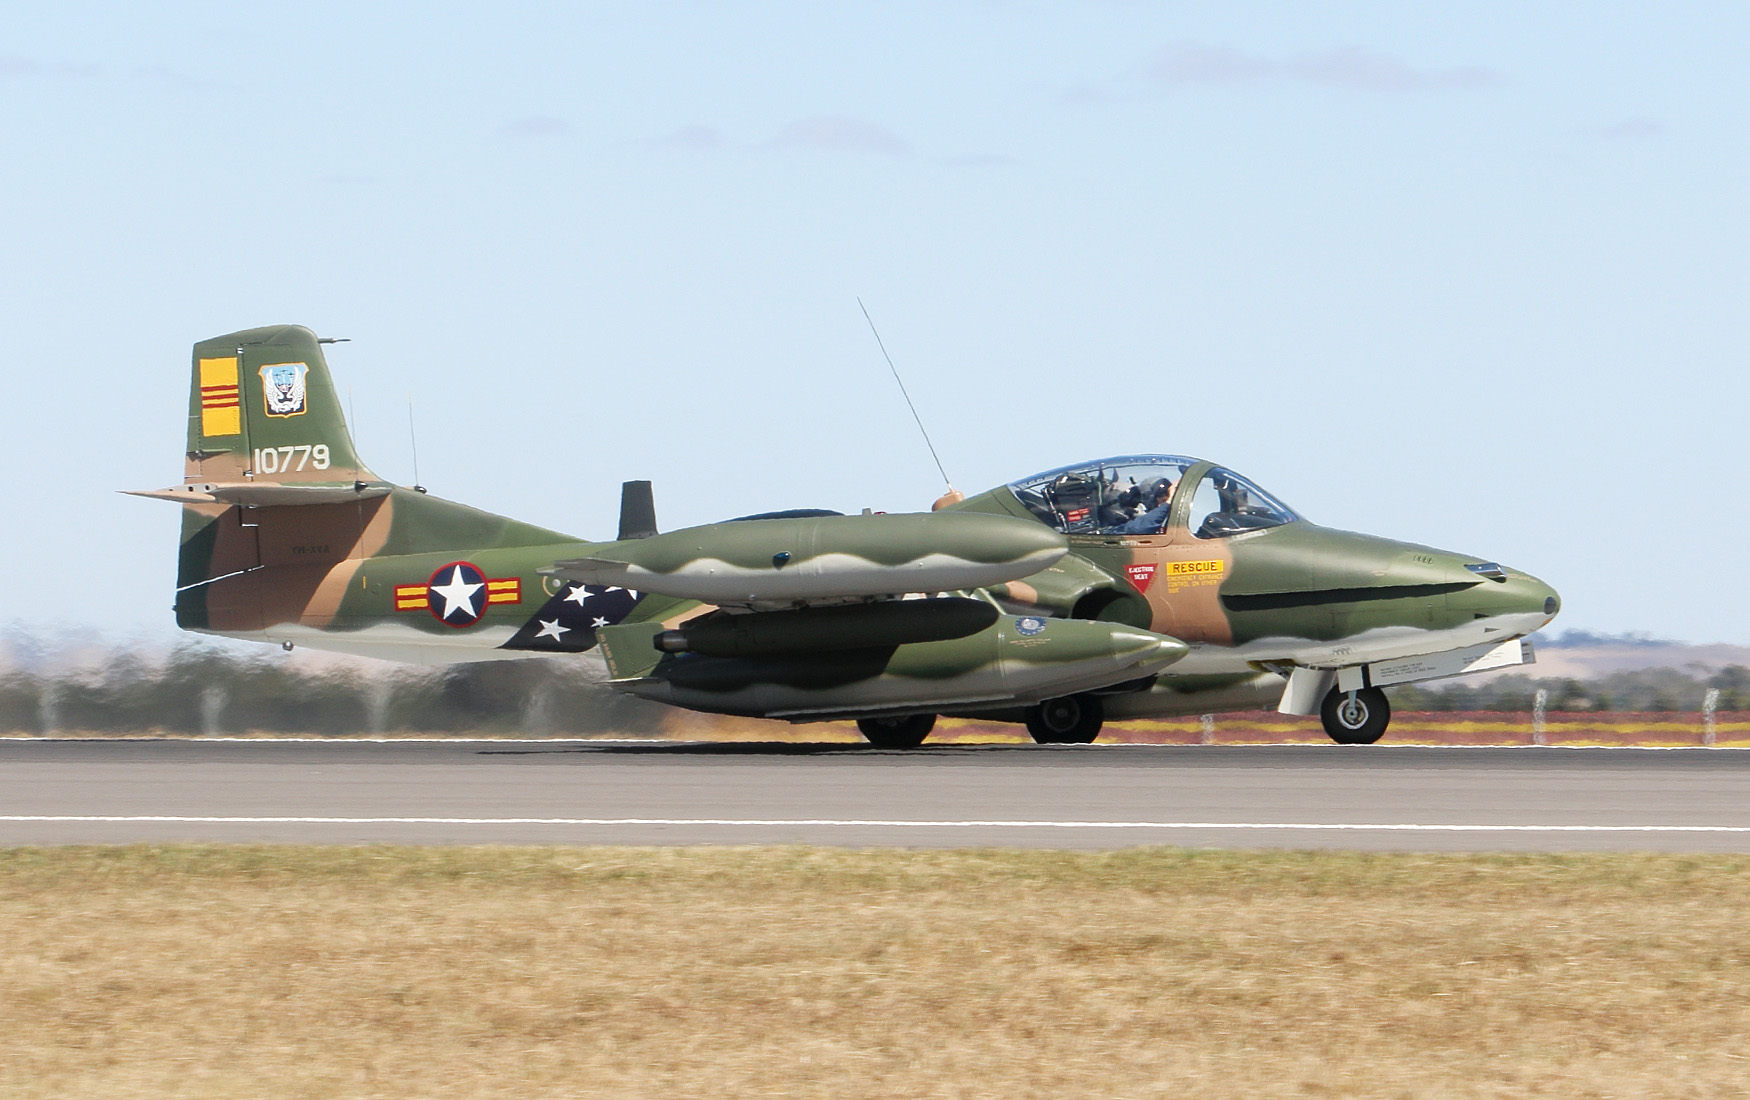 Also present at the Avalon Airshow were a number of restored historical warbirds such as this Cessna A-37B Dragonfly ground-attack aircraft painted in South Vietnamese Air Force markings belonging to Australia's Temora Aviation Museum. (Mike Yeo/Staff)